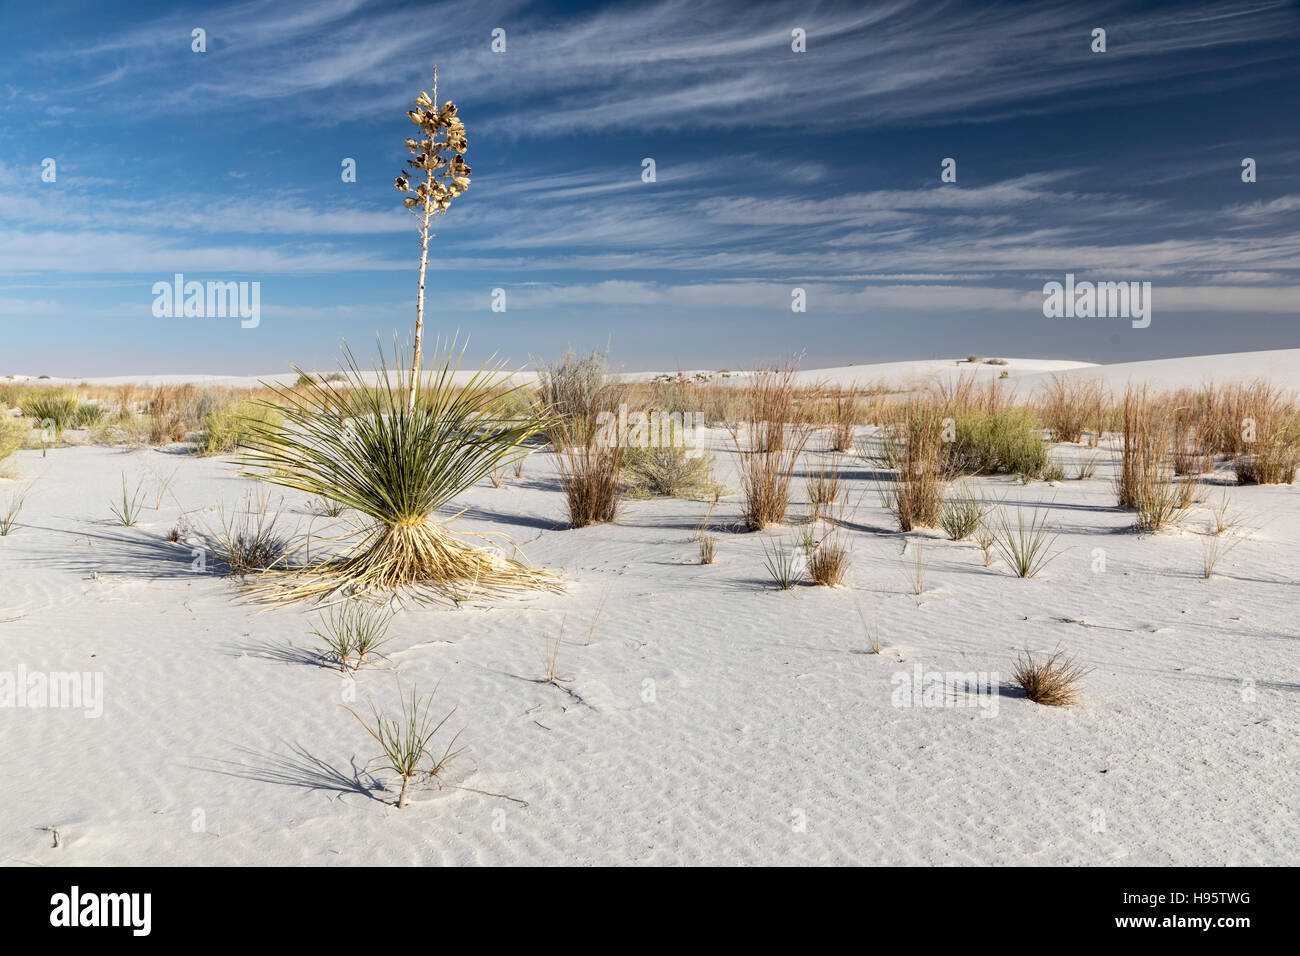 Sand dunes and yucca plants at White Sands National Monument near Alamogordo, New Mexico, USA - Stock Image